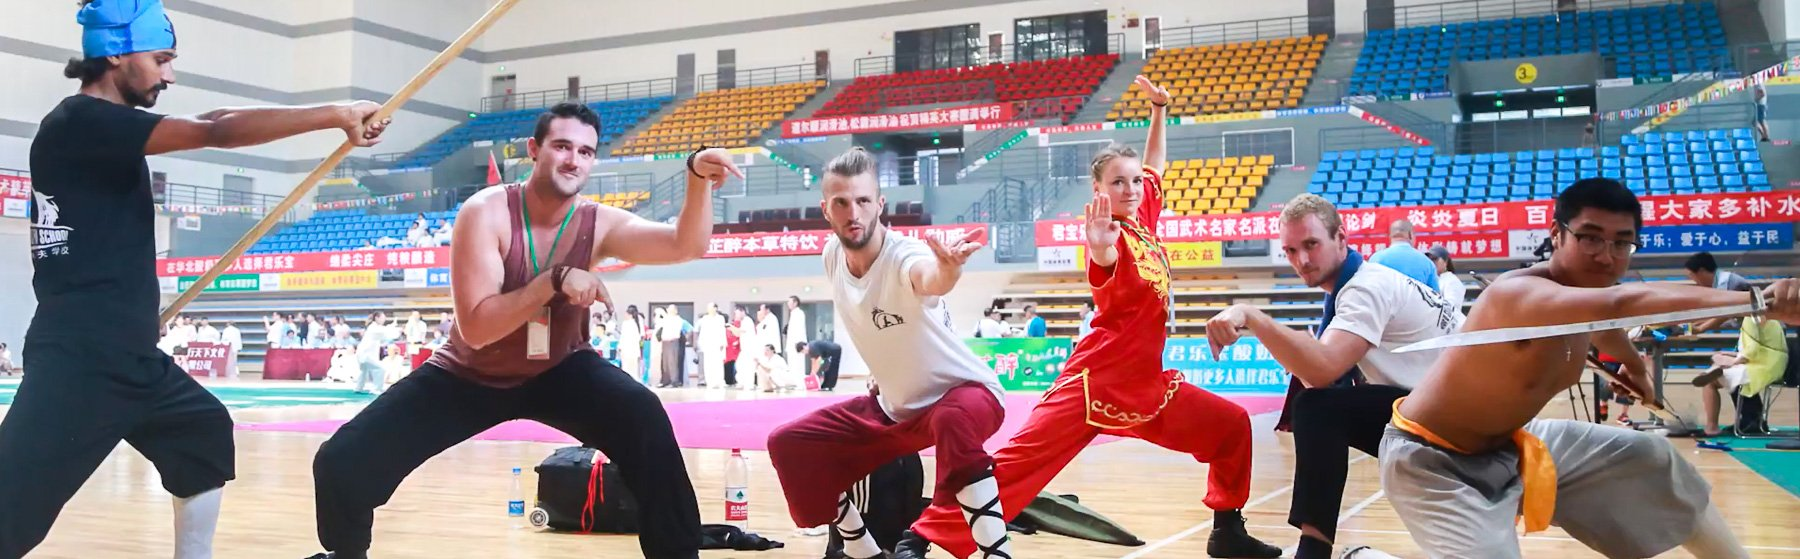 participants in kung fu competition in China